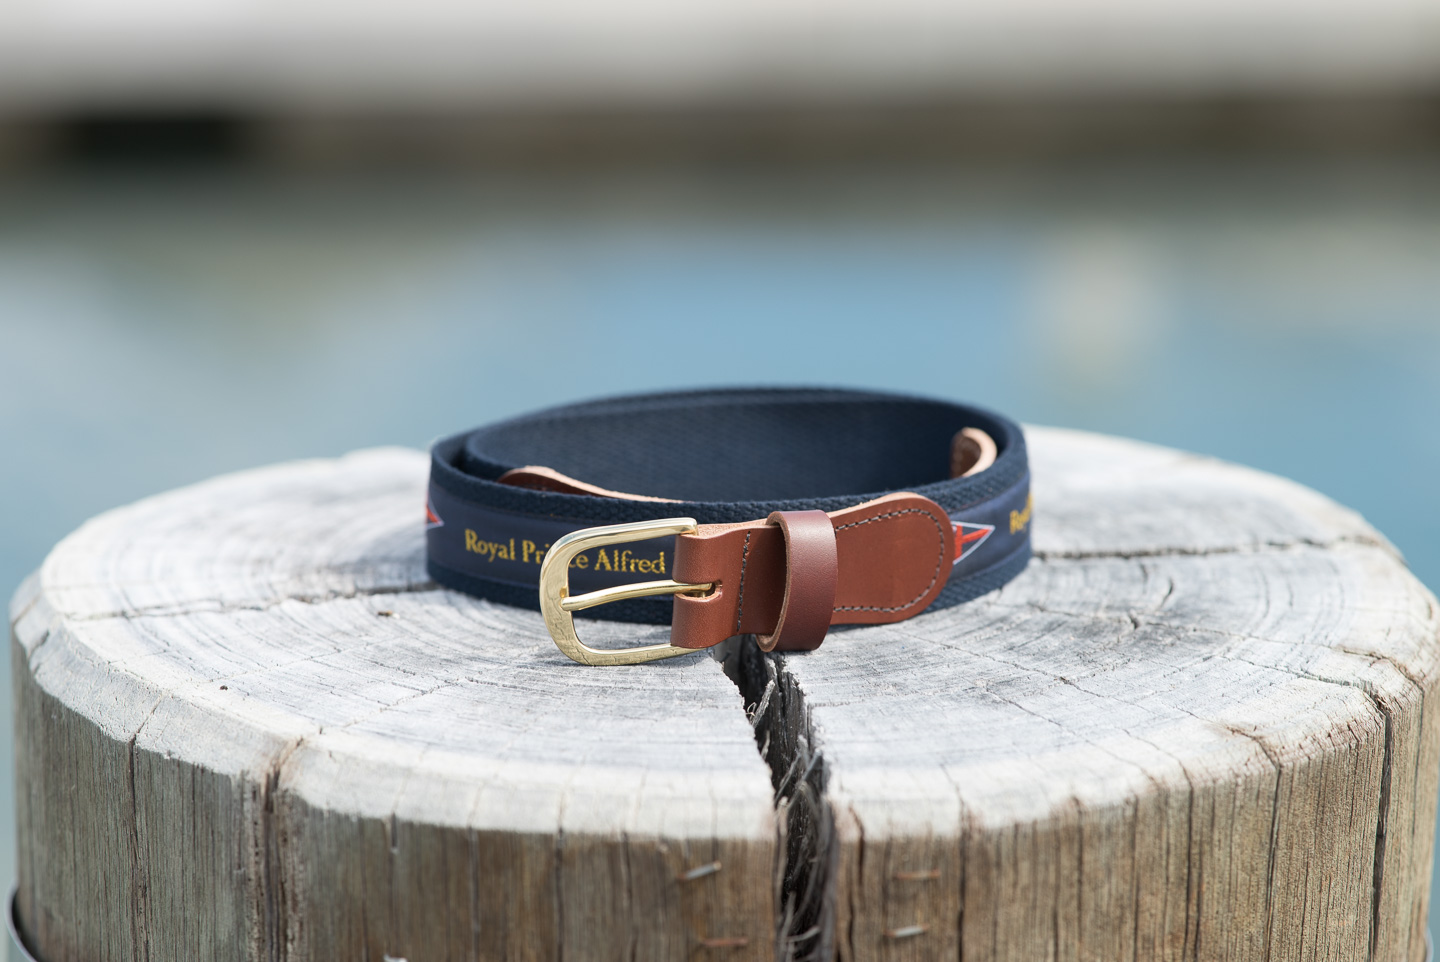 Royal Prince Alfred Yacht Club Belt